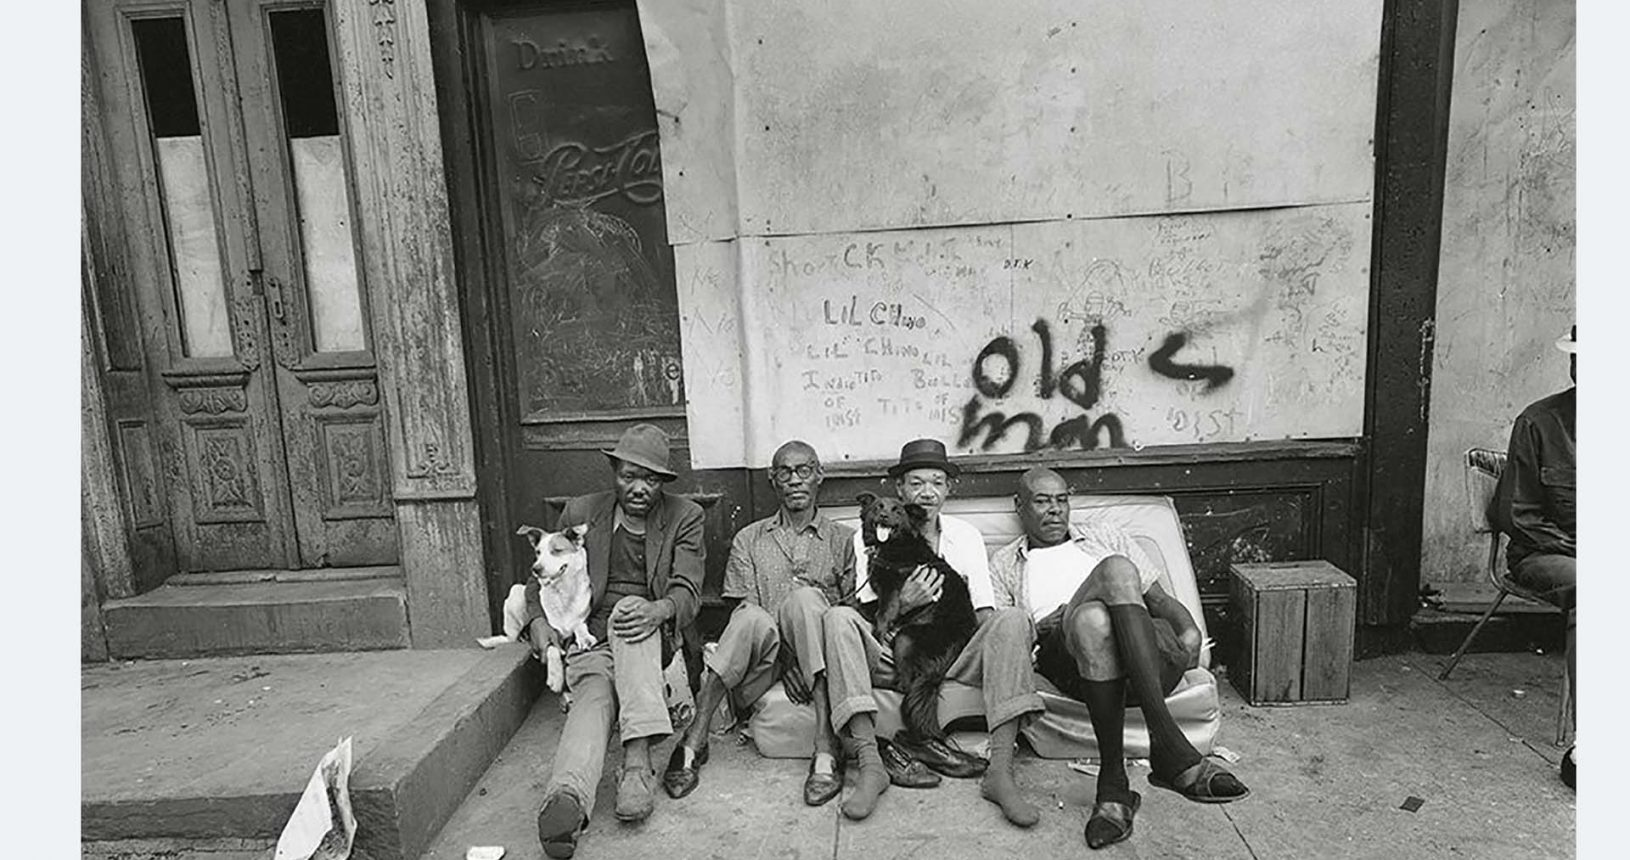 Bruce Davidson, East 100th Street, Harlem, New York, 1966, Courtesy Magnum Photos